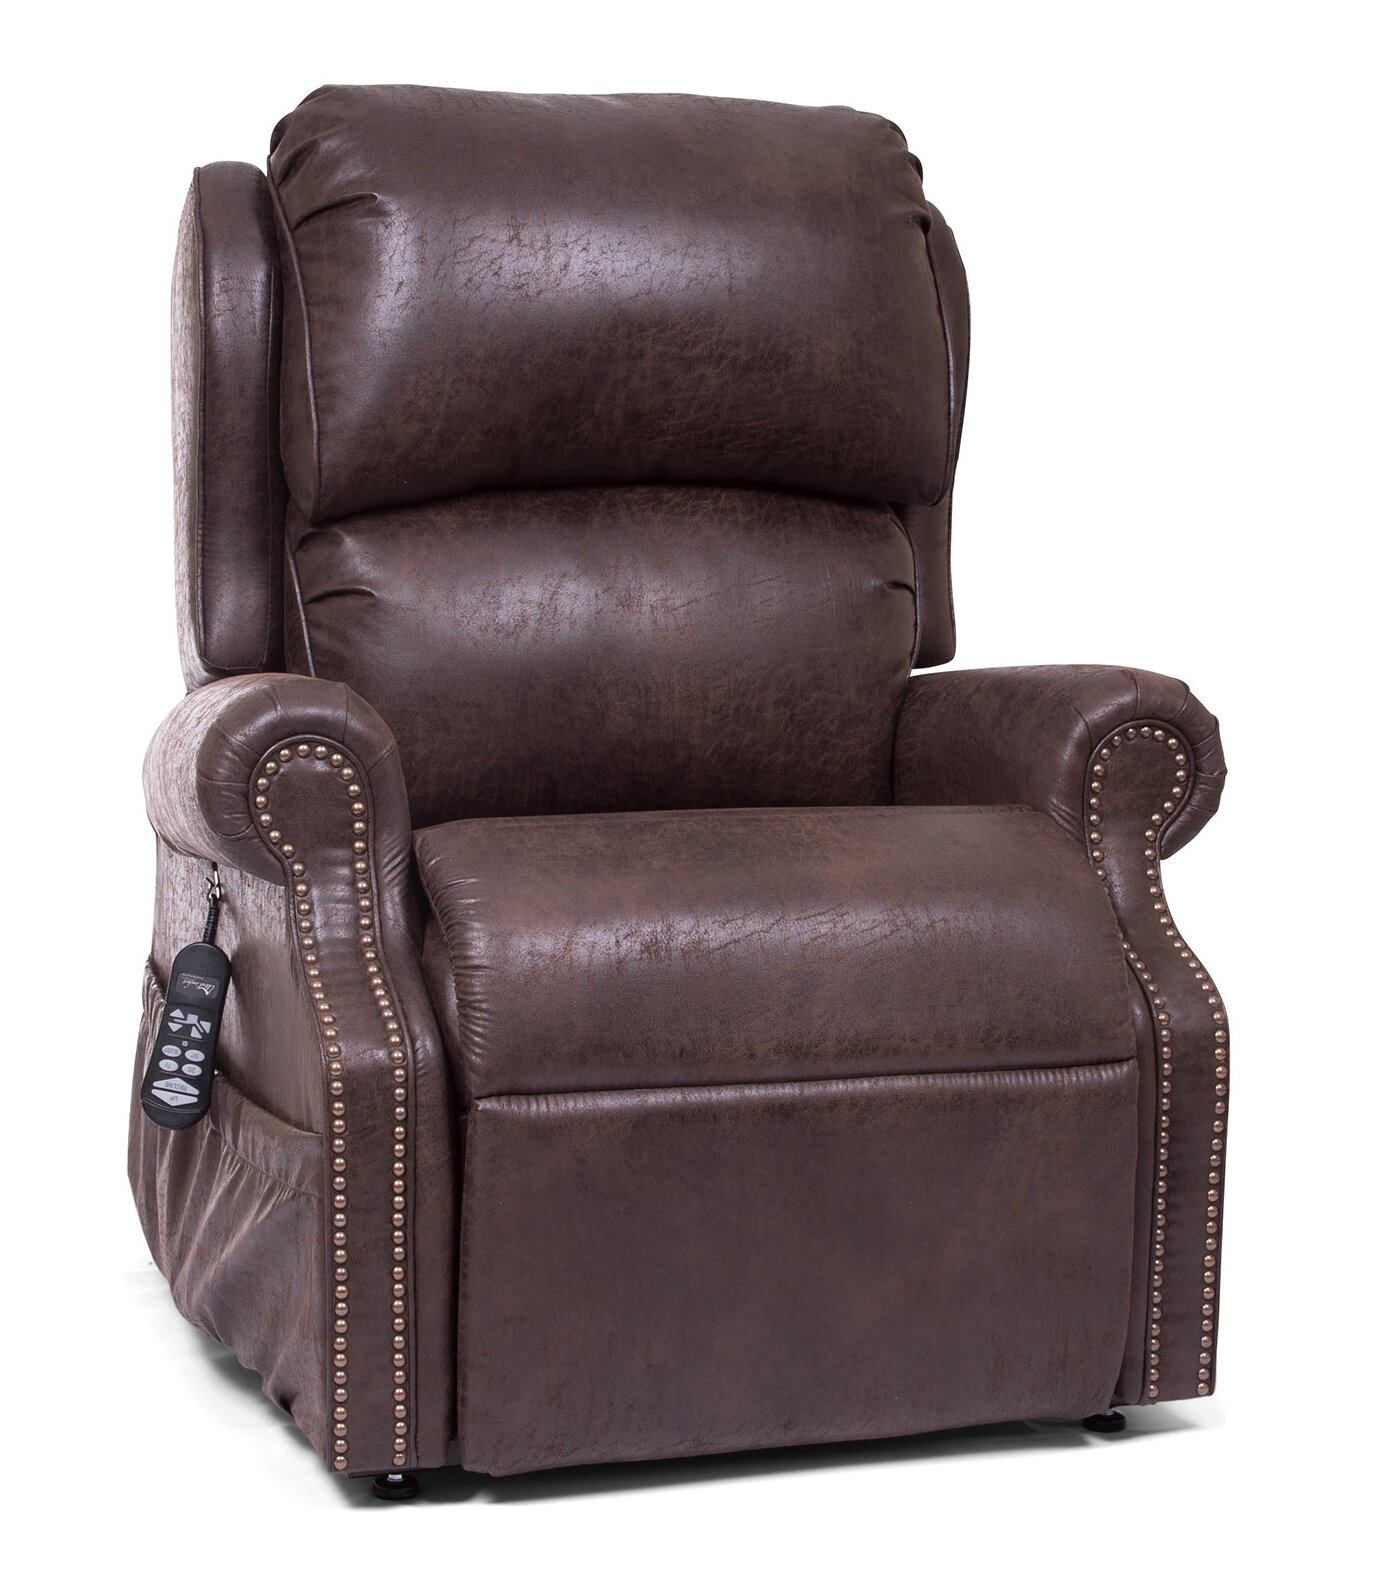 Westland And Birch Rapallo Power Lift Assist Recliner Wayfair